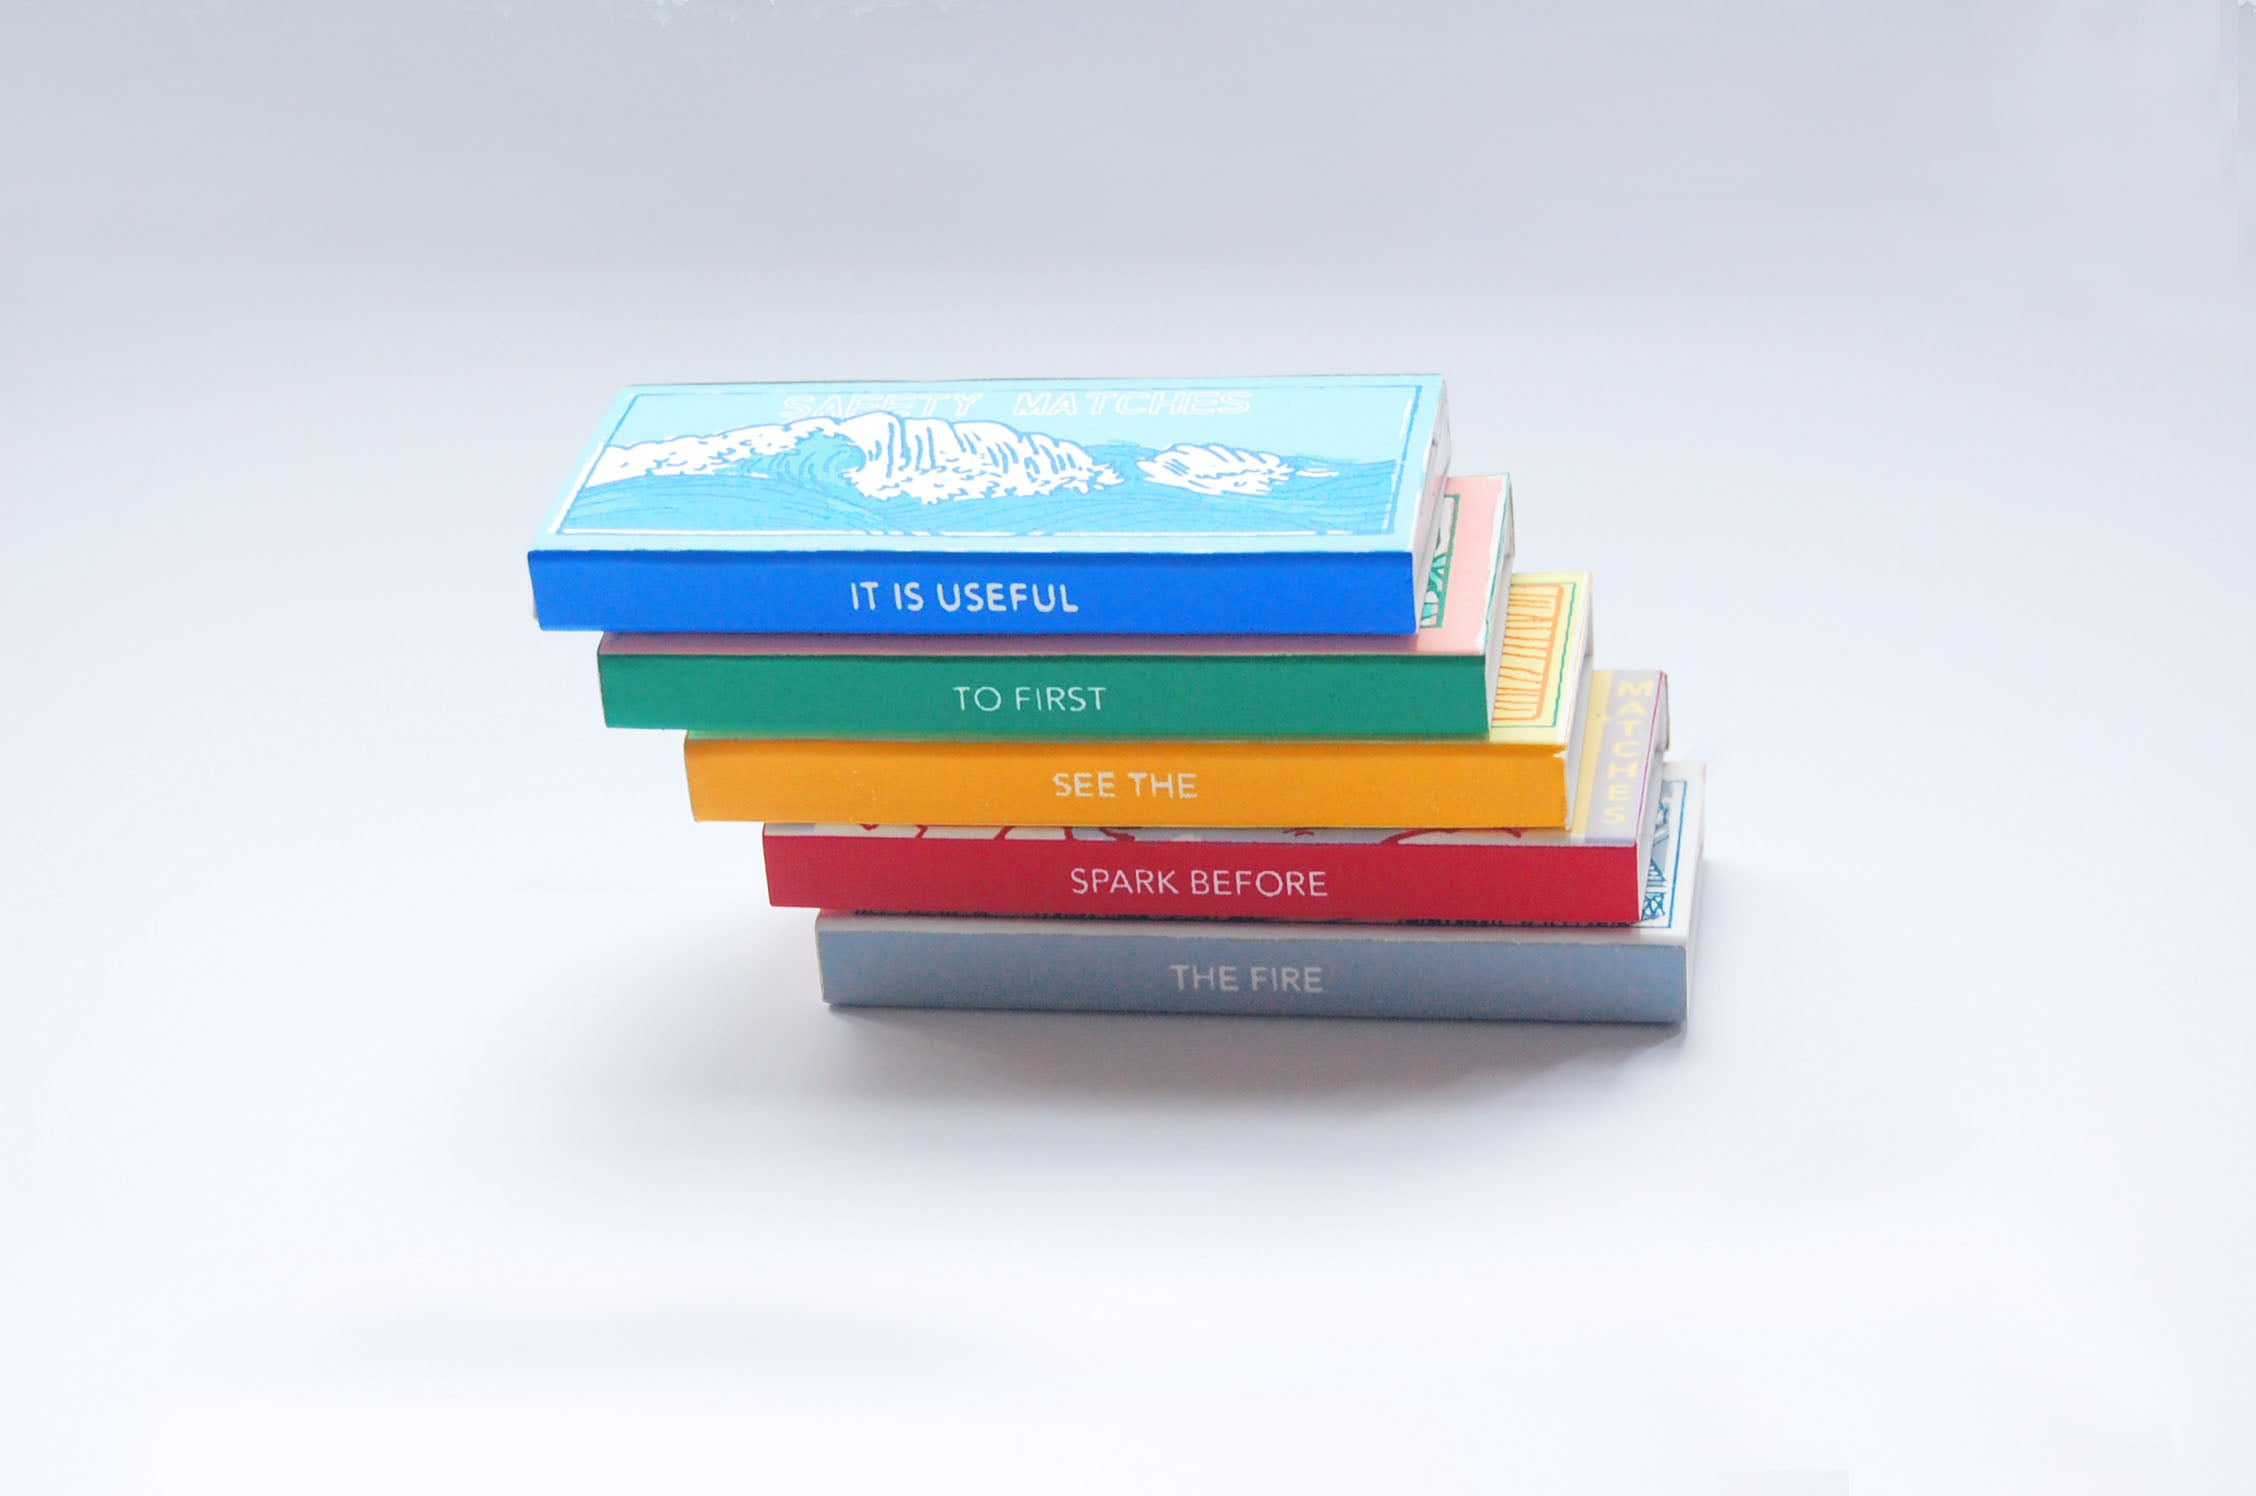 Limited edition japanese matchboxes by Keap Objectify